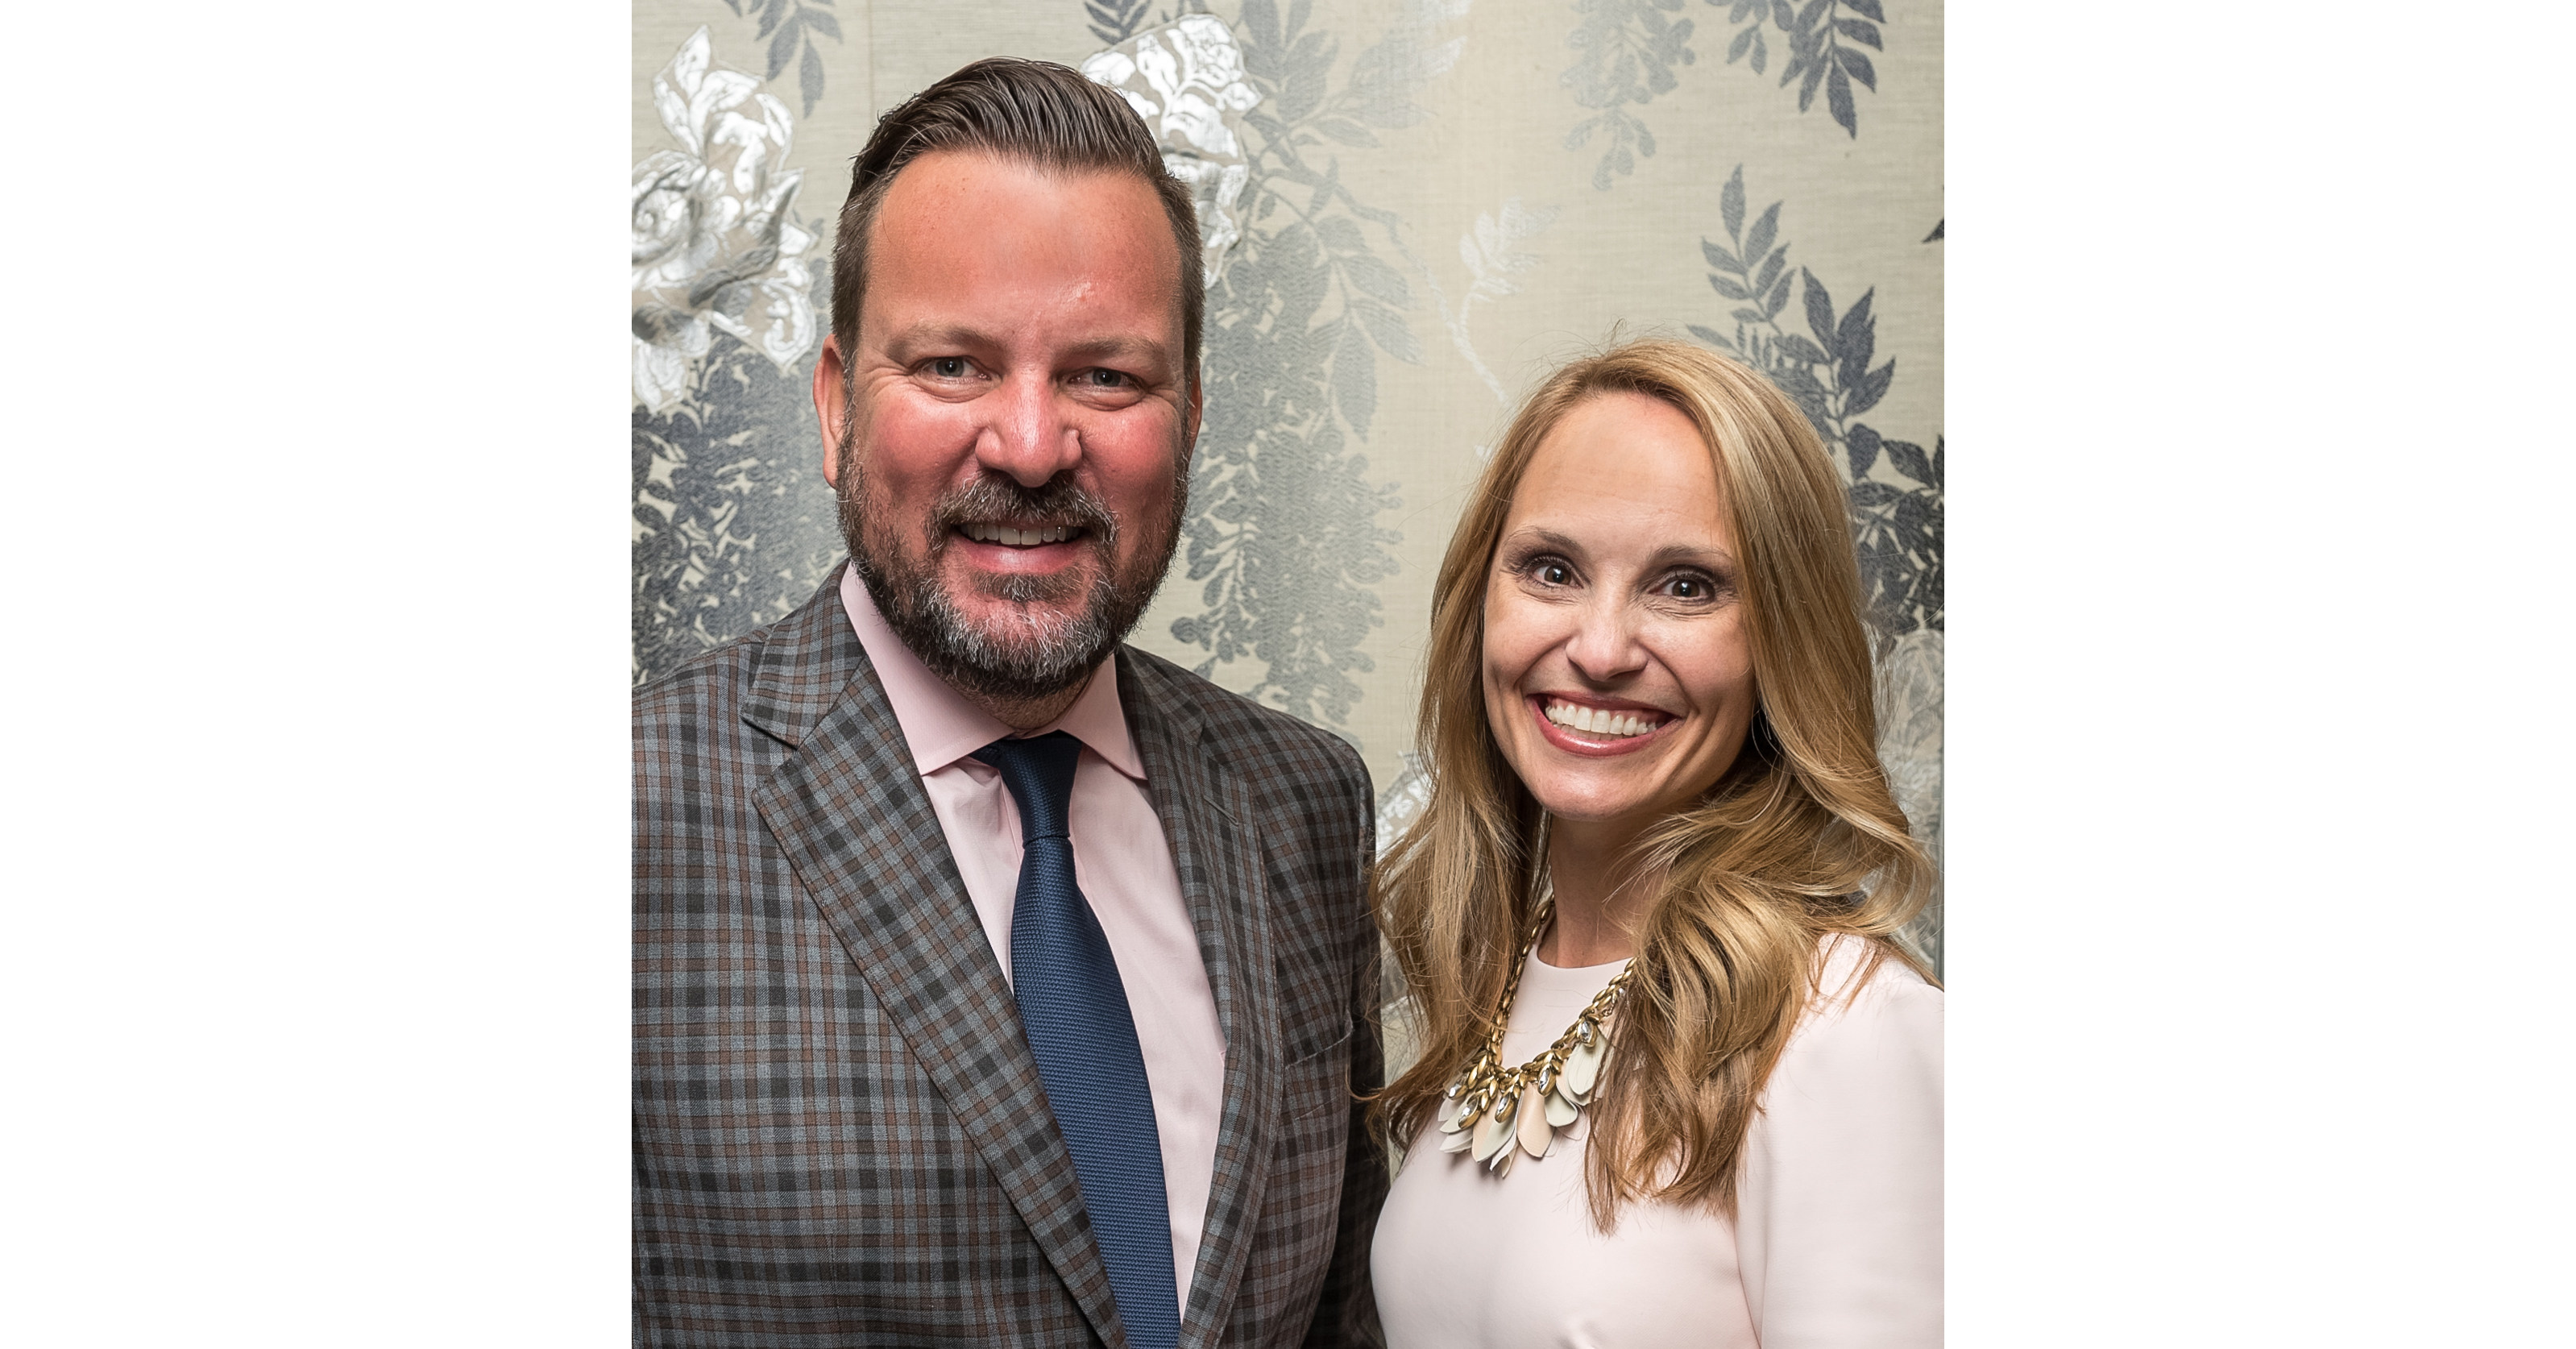 Concierge Auctions Celebrates A Decade Of Success As The Leading Marketplace To Buy And Sell High-End Real Estate